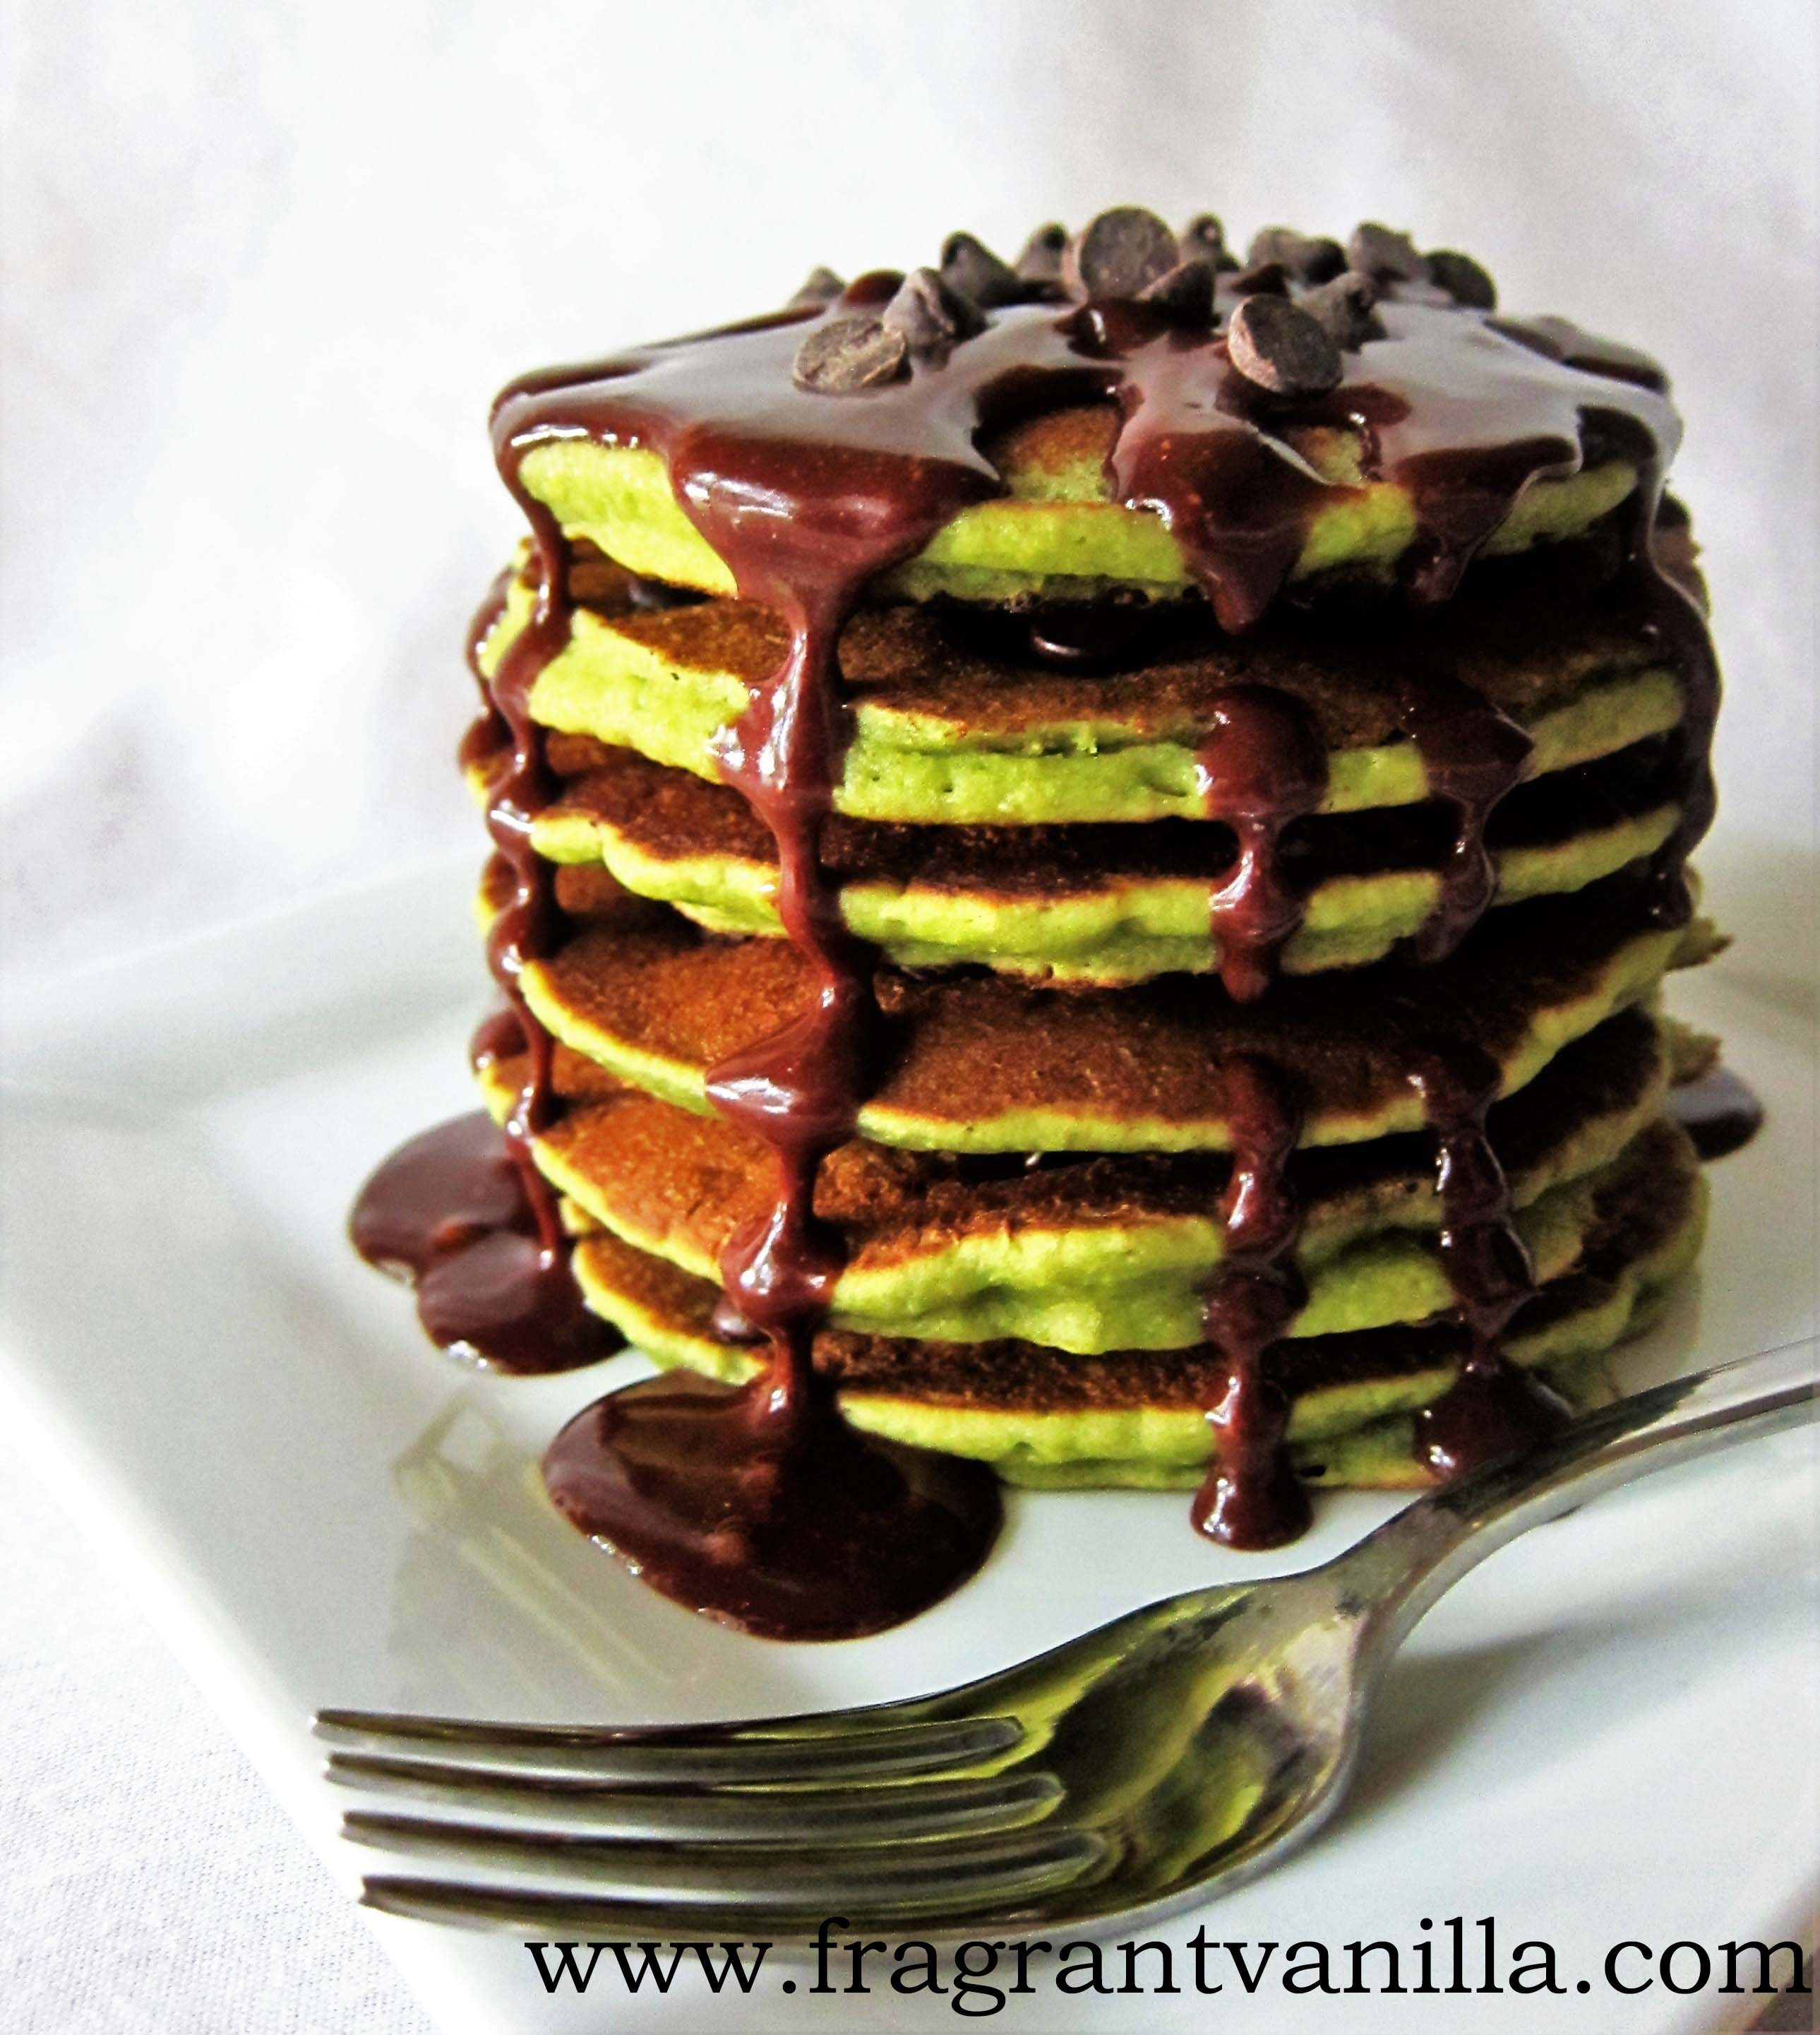 Vegan Matcha Chocolate Chip Pancakes